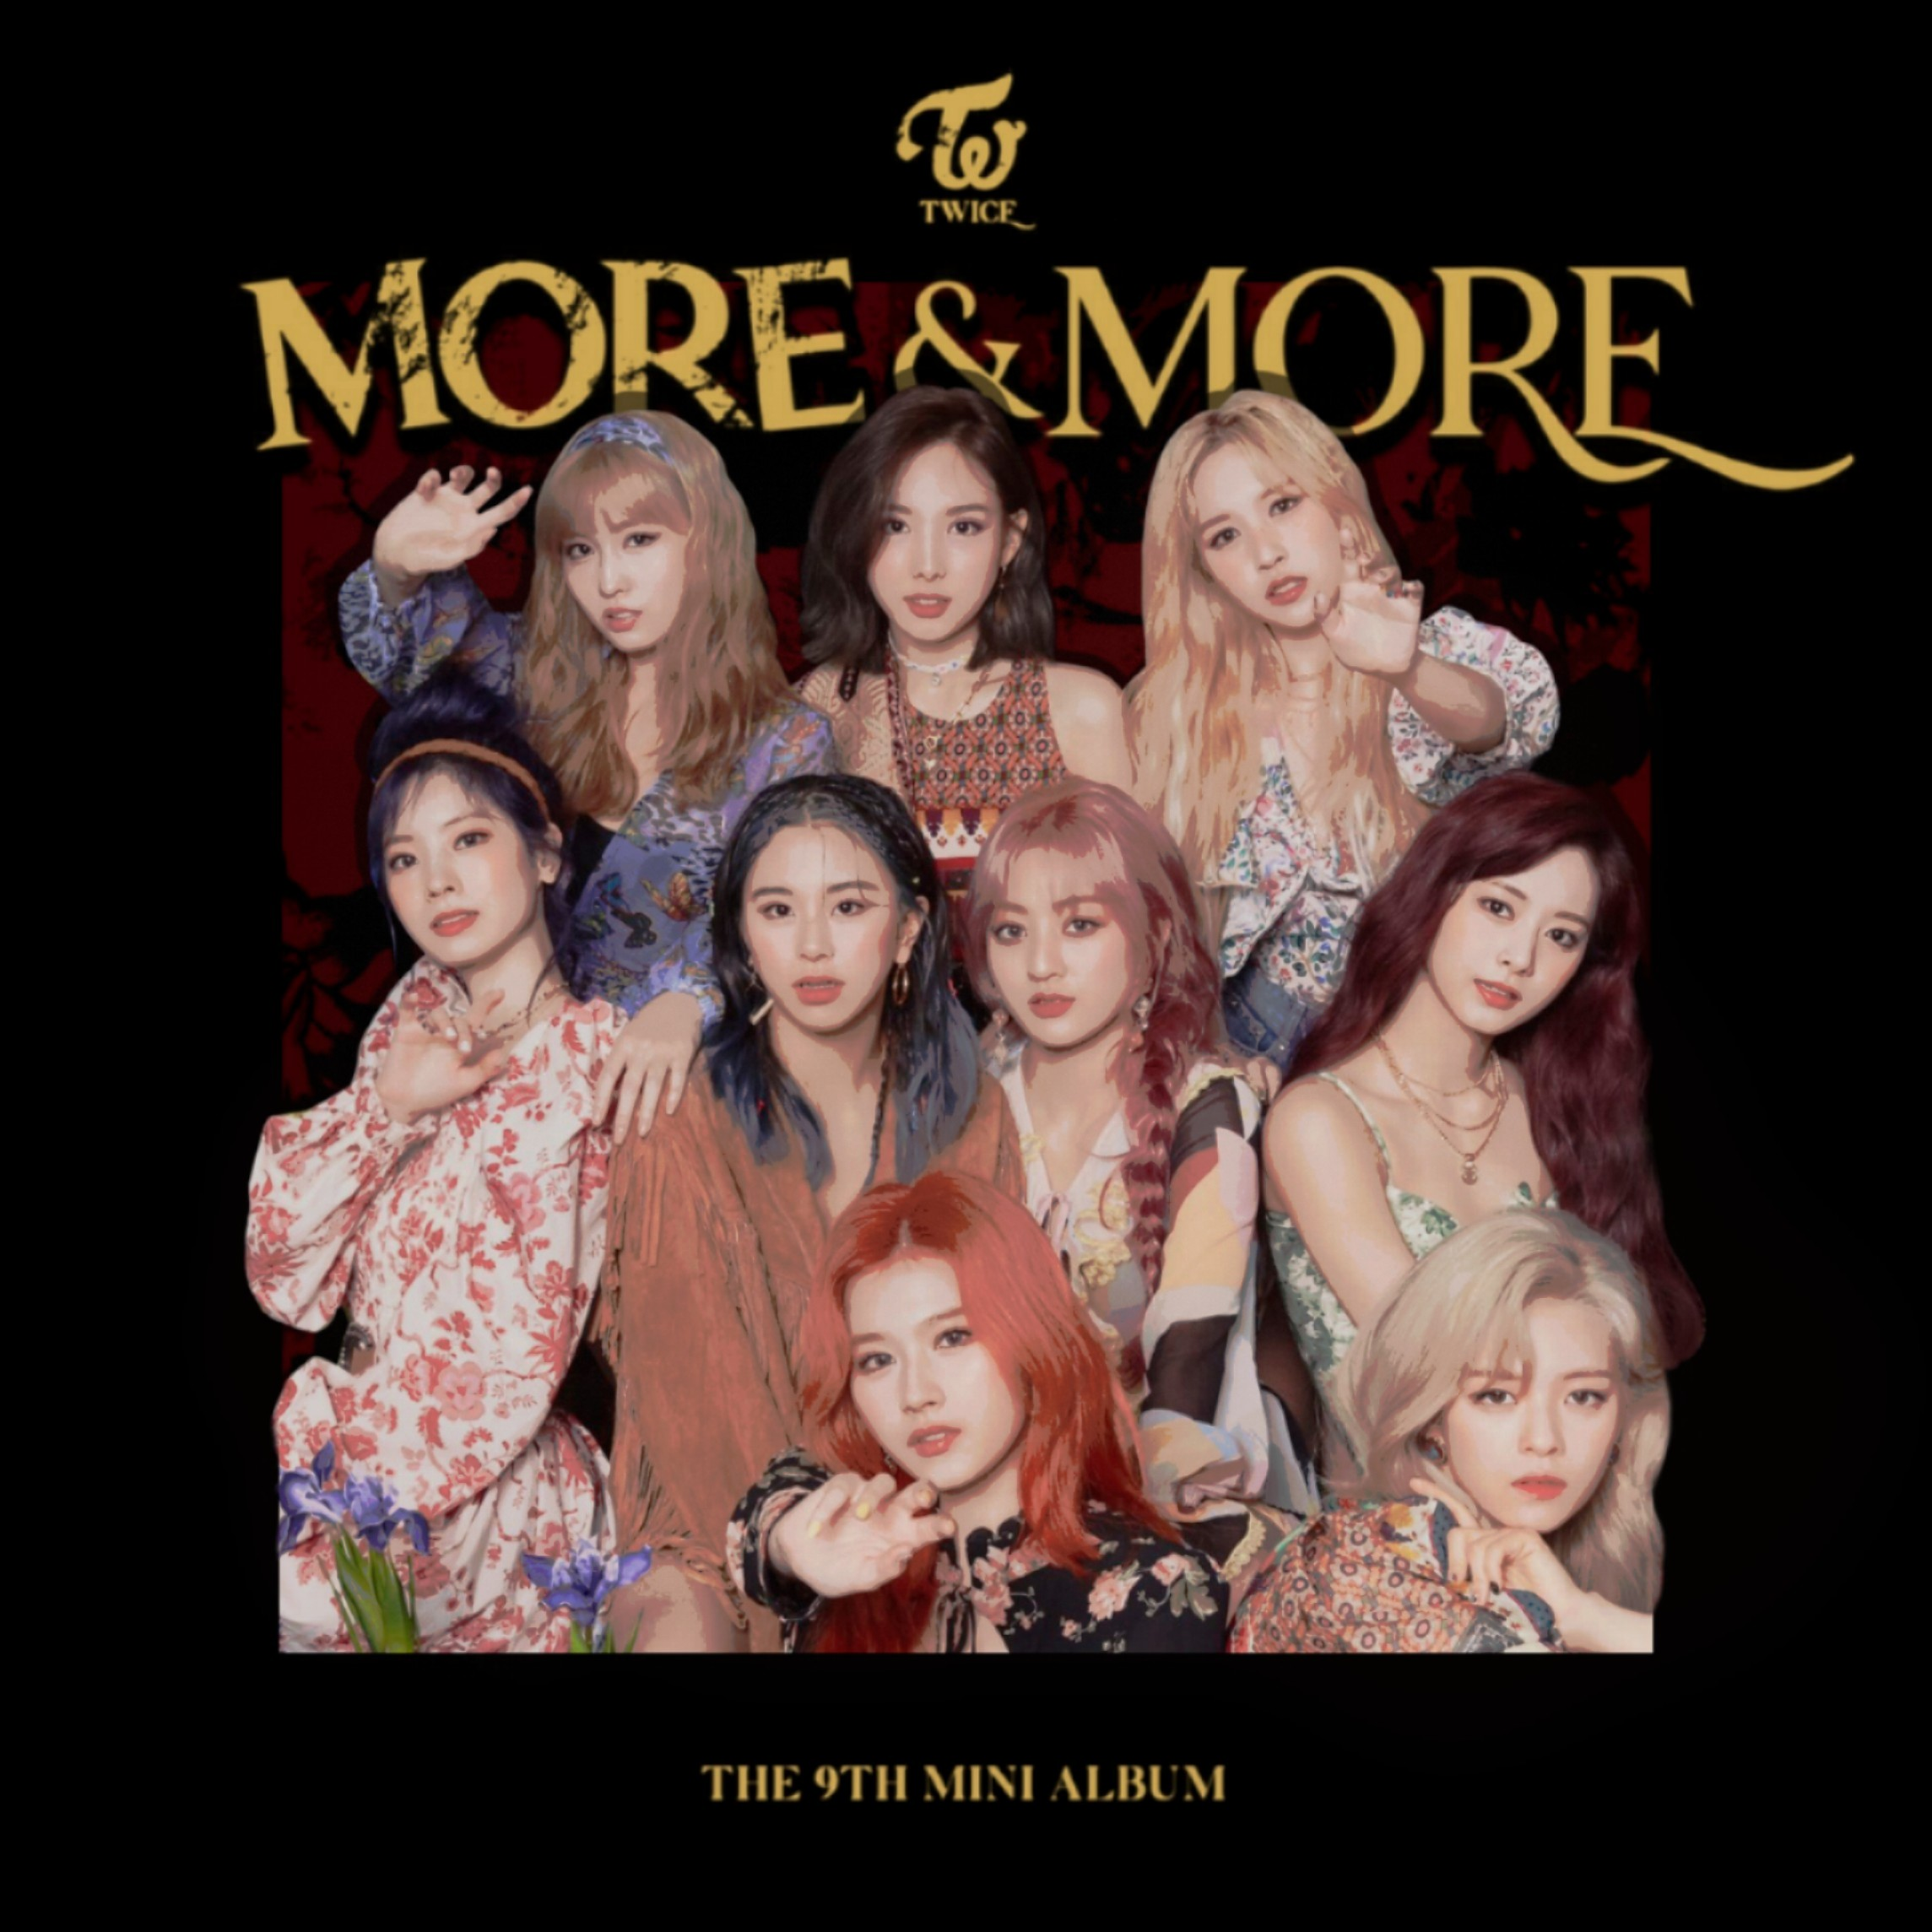 TWICE MORE AND MORE / THE 9TH MINI ALBUM cover by LEAlbum on DeviantArt